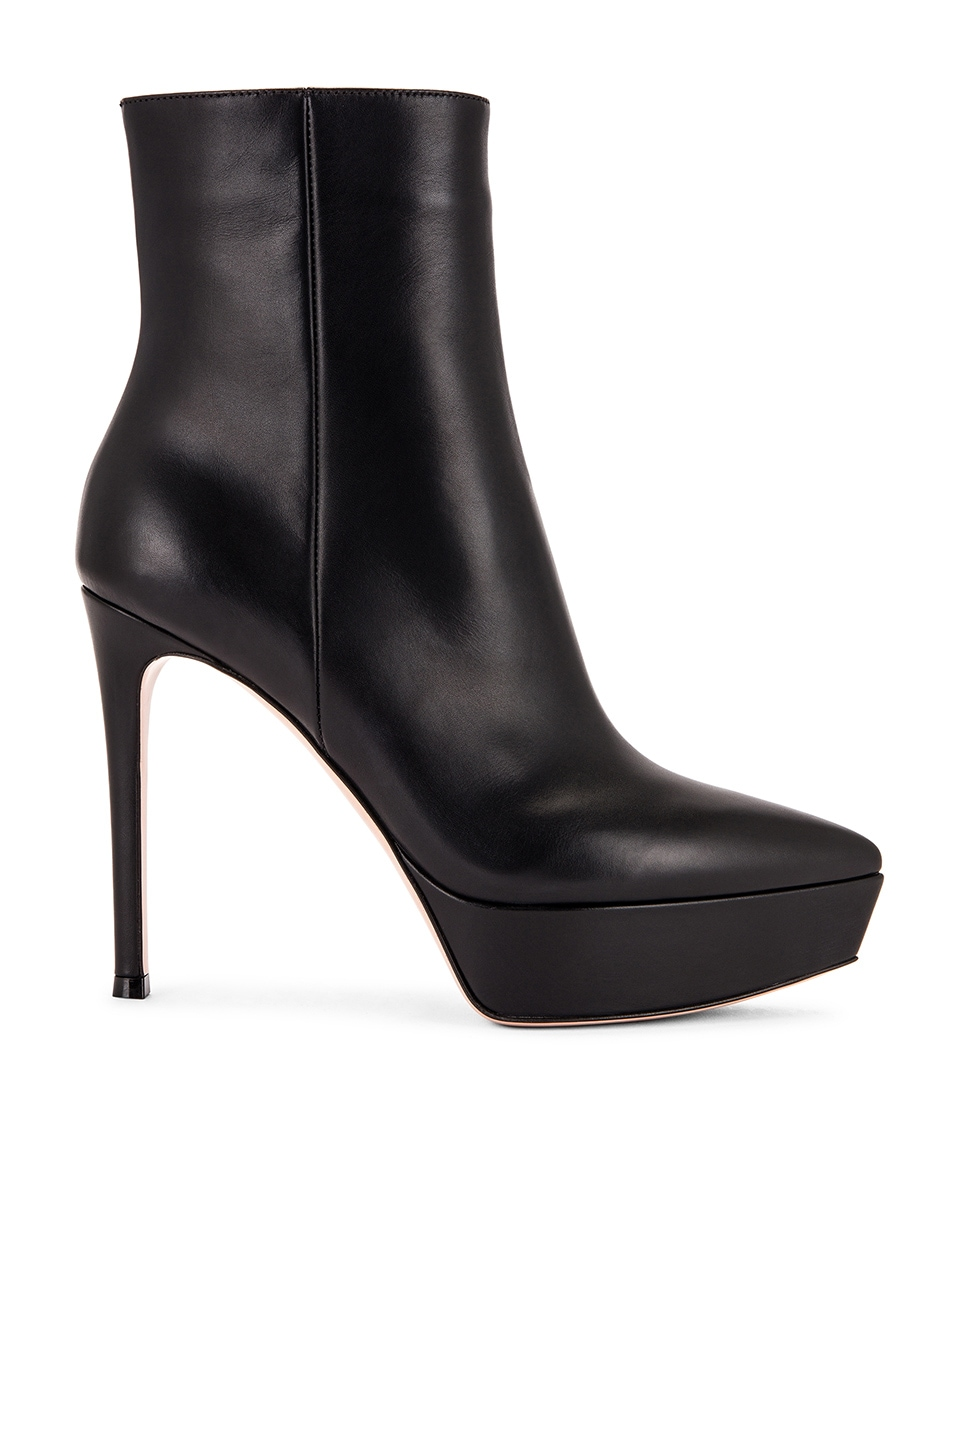 Image 1 of Gianvito Rossi Platform Ankle Booties in Black